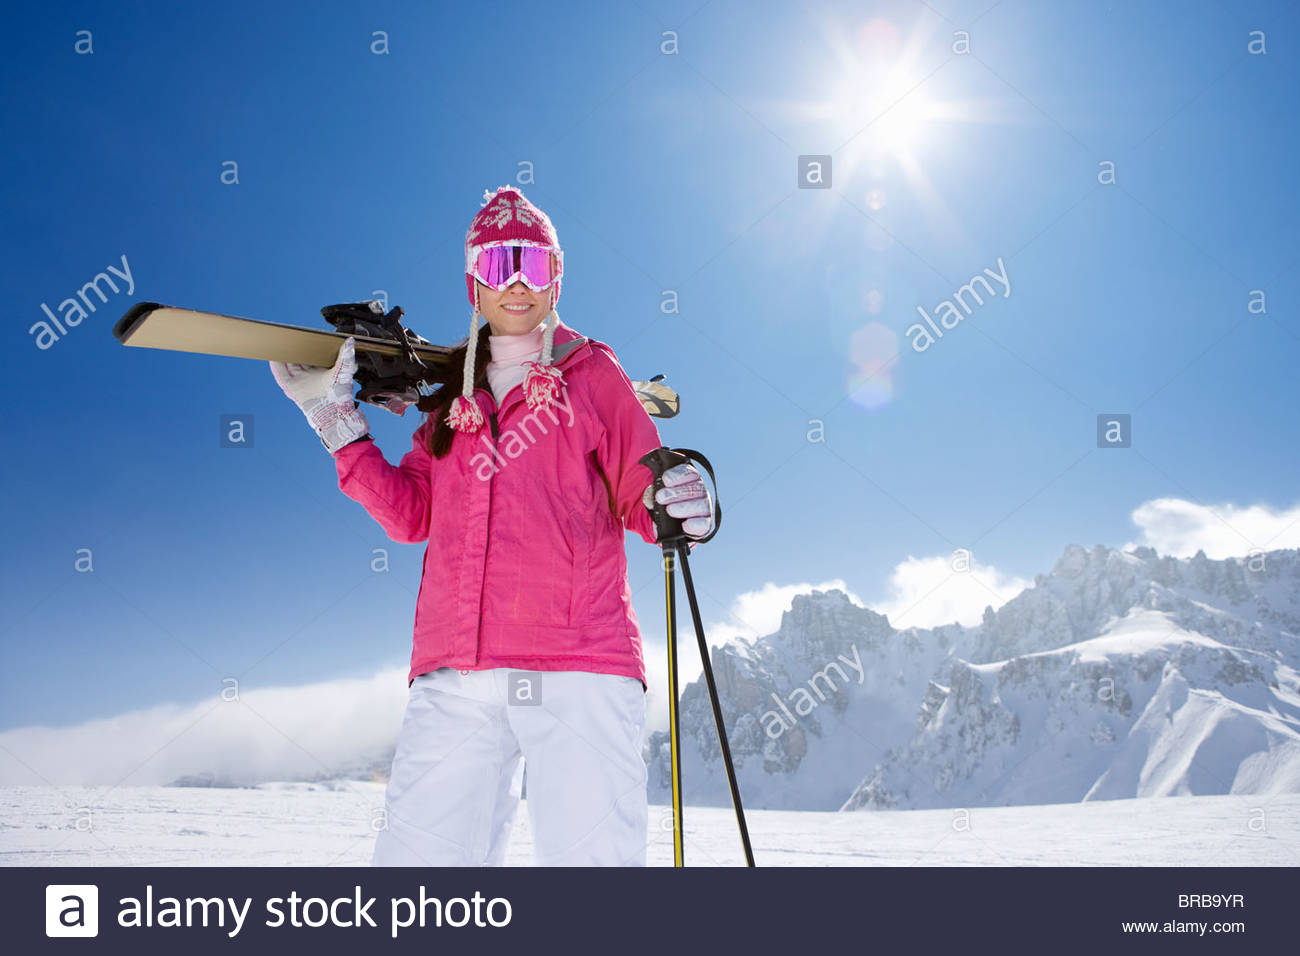 Skier carrying skis and standing on ski slope - Stock Image